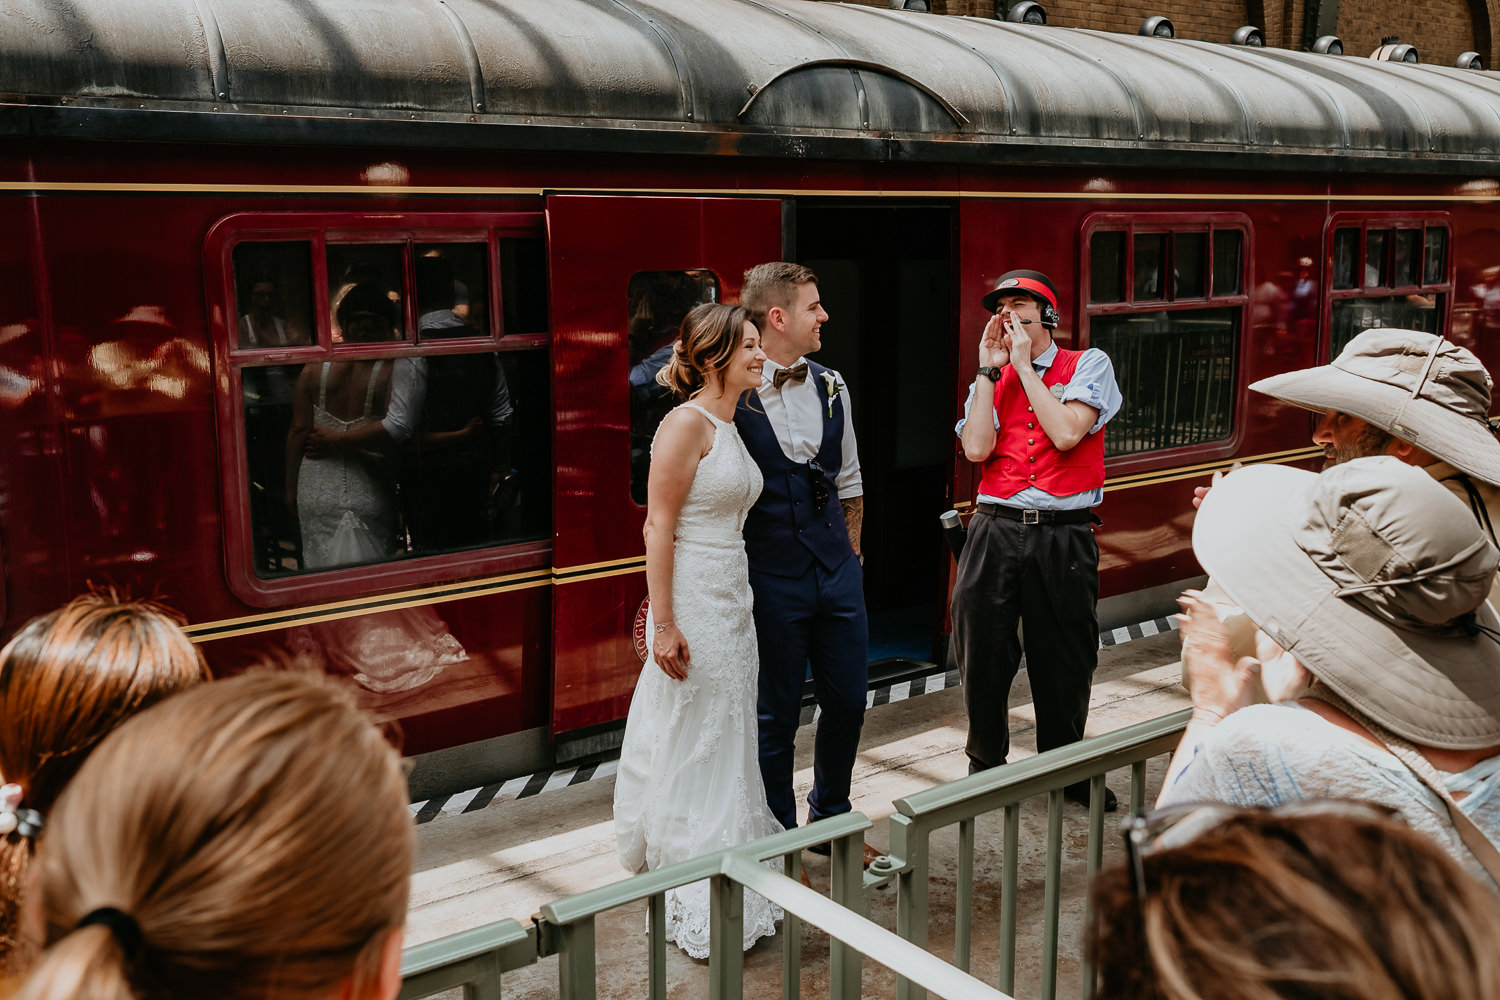 Hogwarts Express conductor announcing the newlyweds